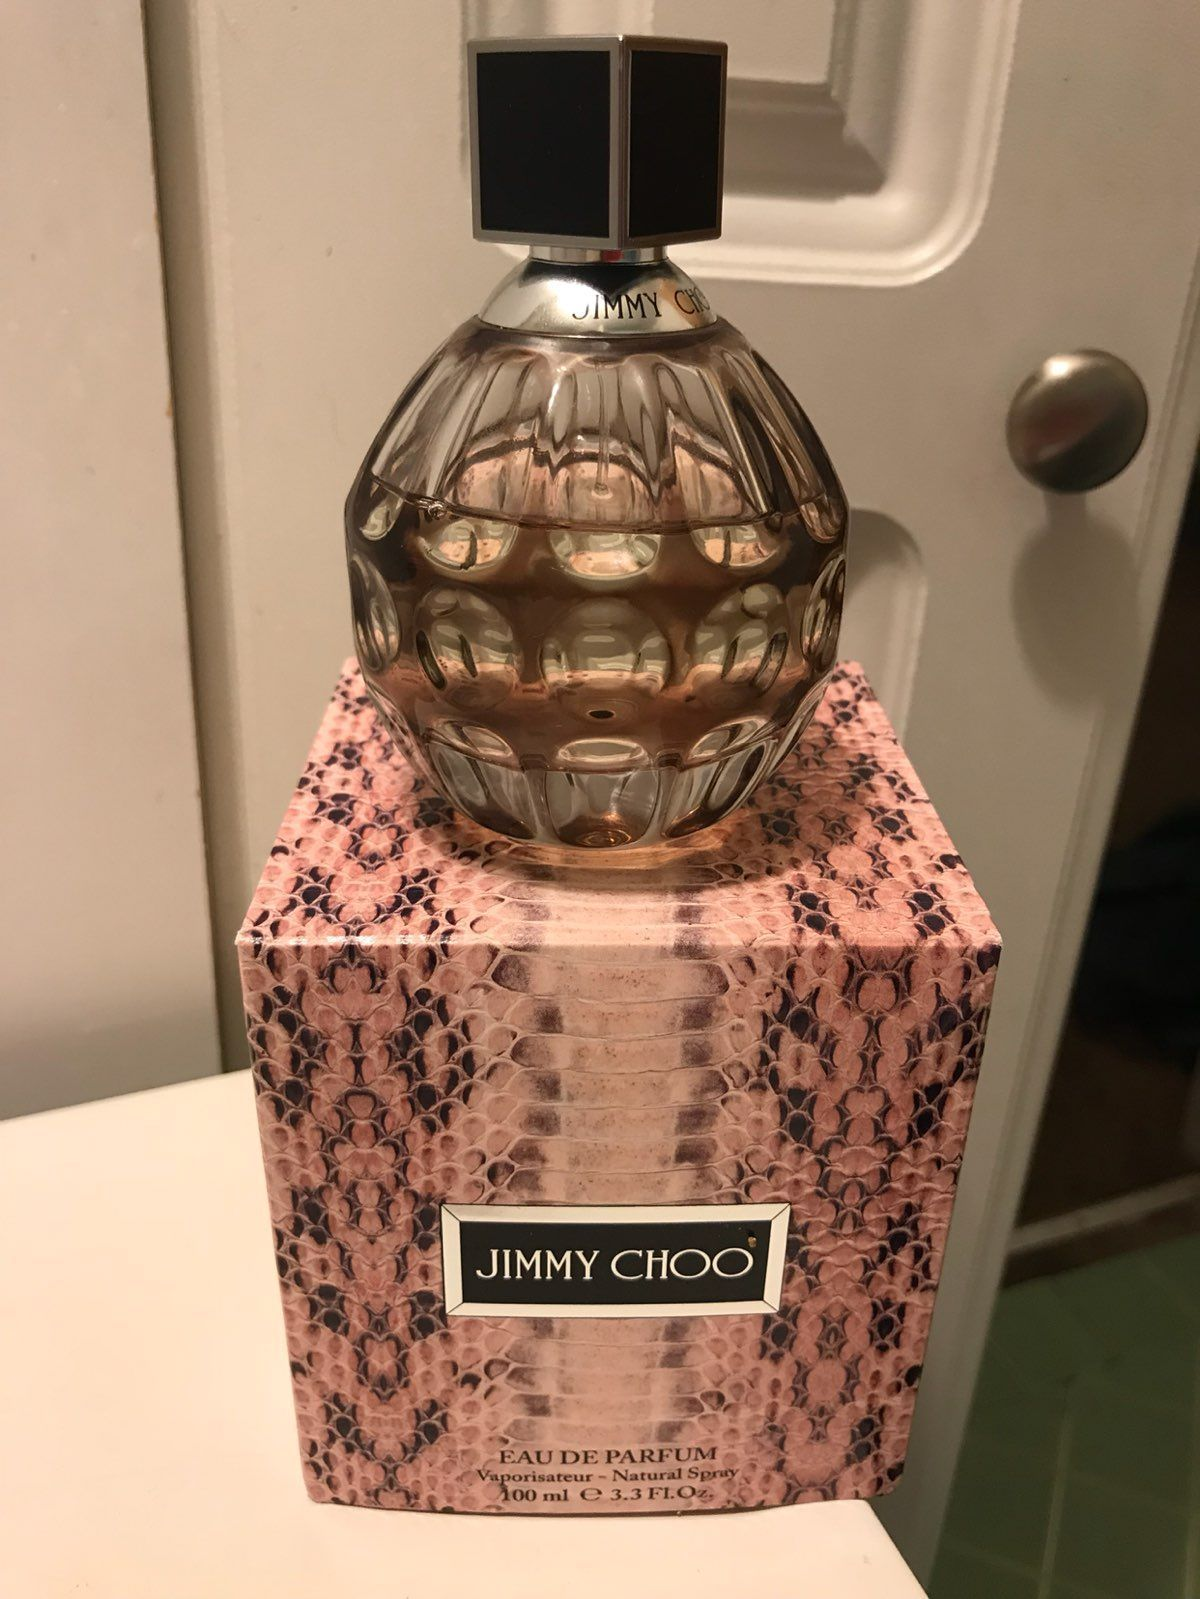 Jimmy Choo Original Fragrance Perfume